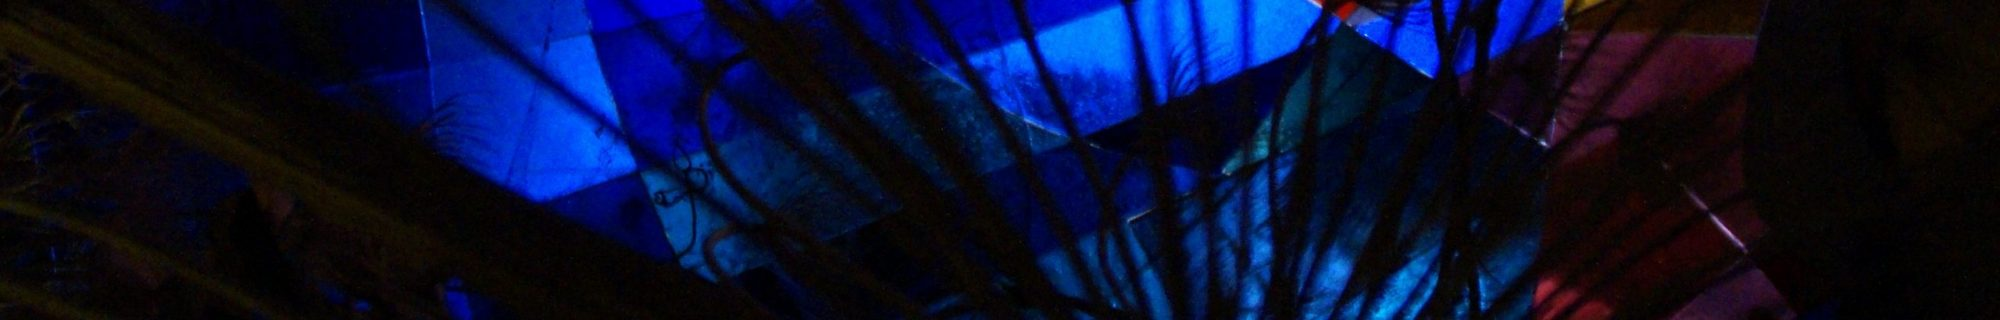 person-light-abstract-night-window-glass-997225-pxherecropped.com